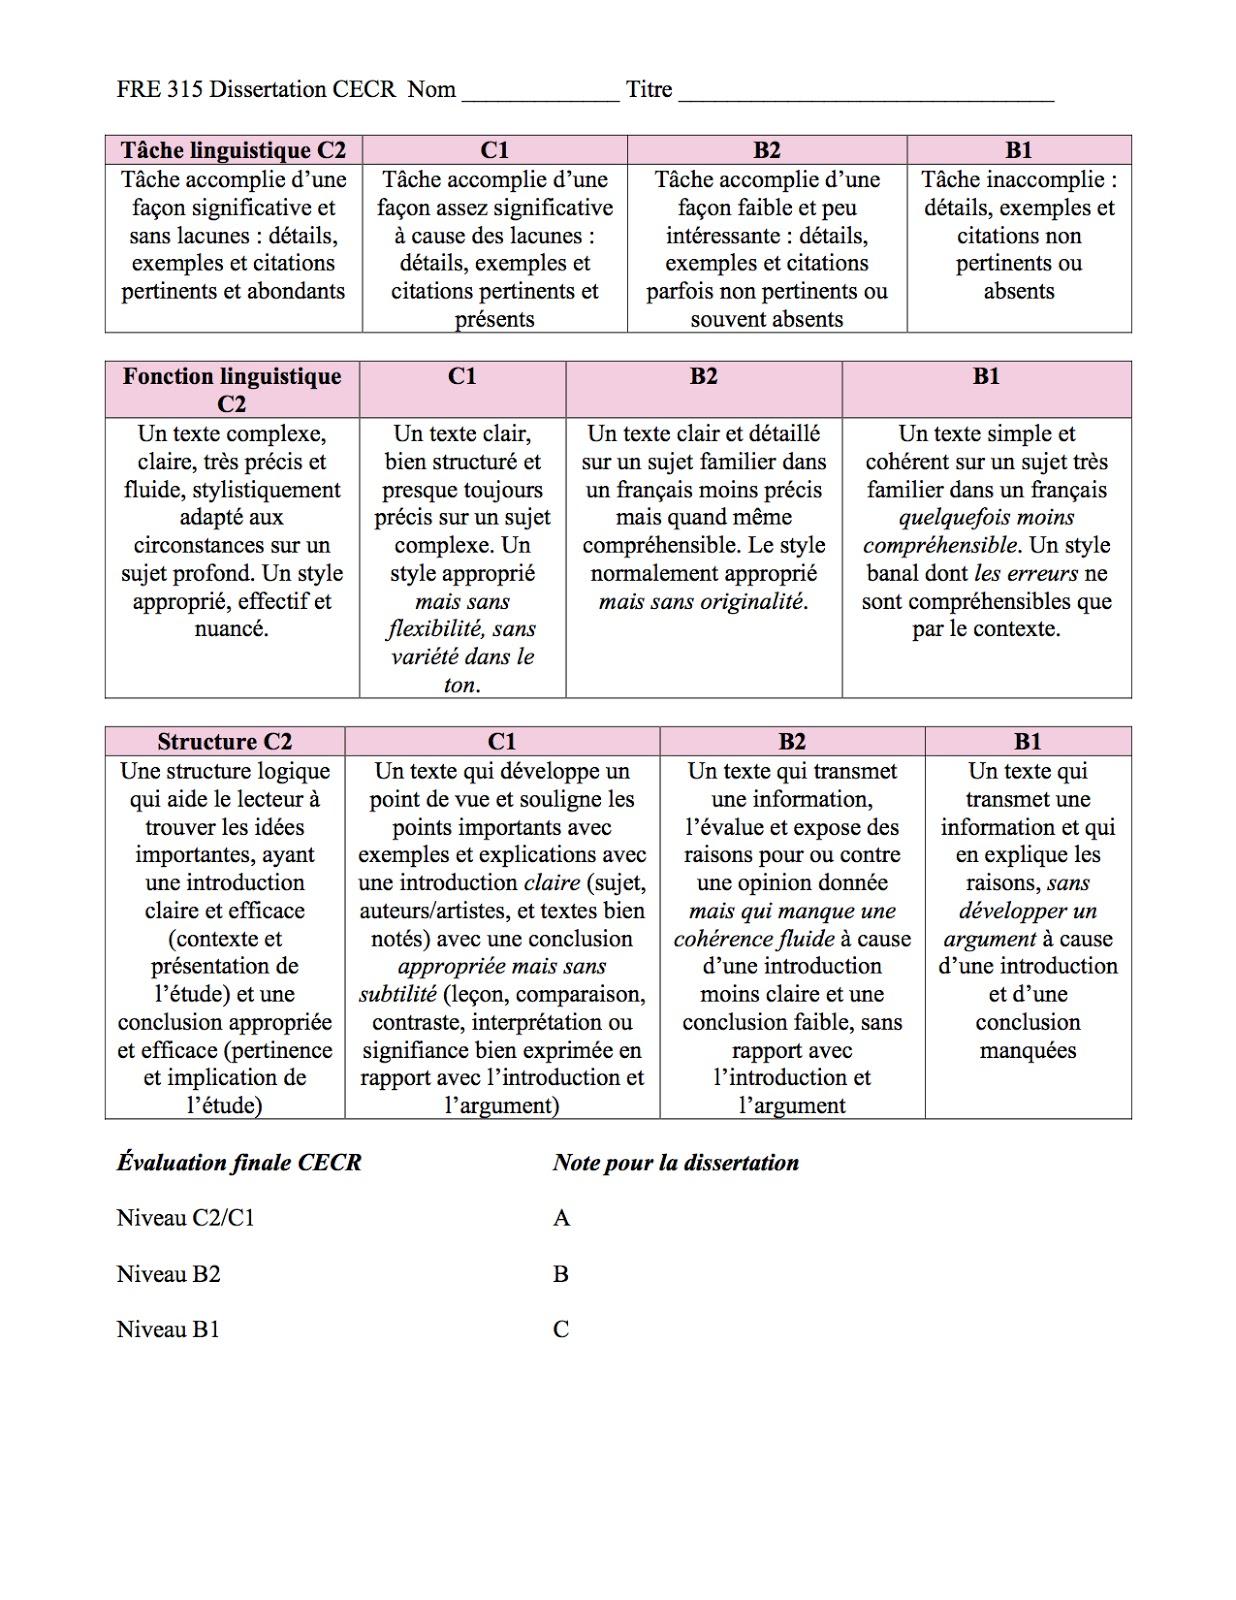 dissertation proposal assessment checklist There dissertation checklist are 23-3-2012 sas dissertation proposal self-assessment academic review checklist.